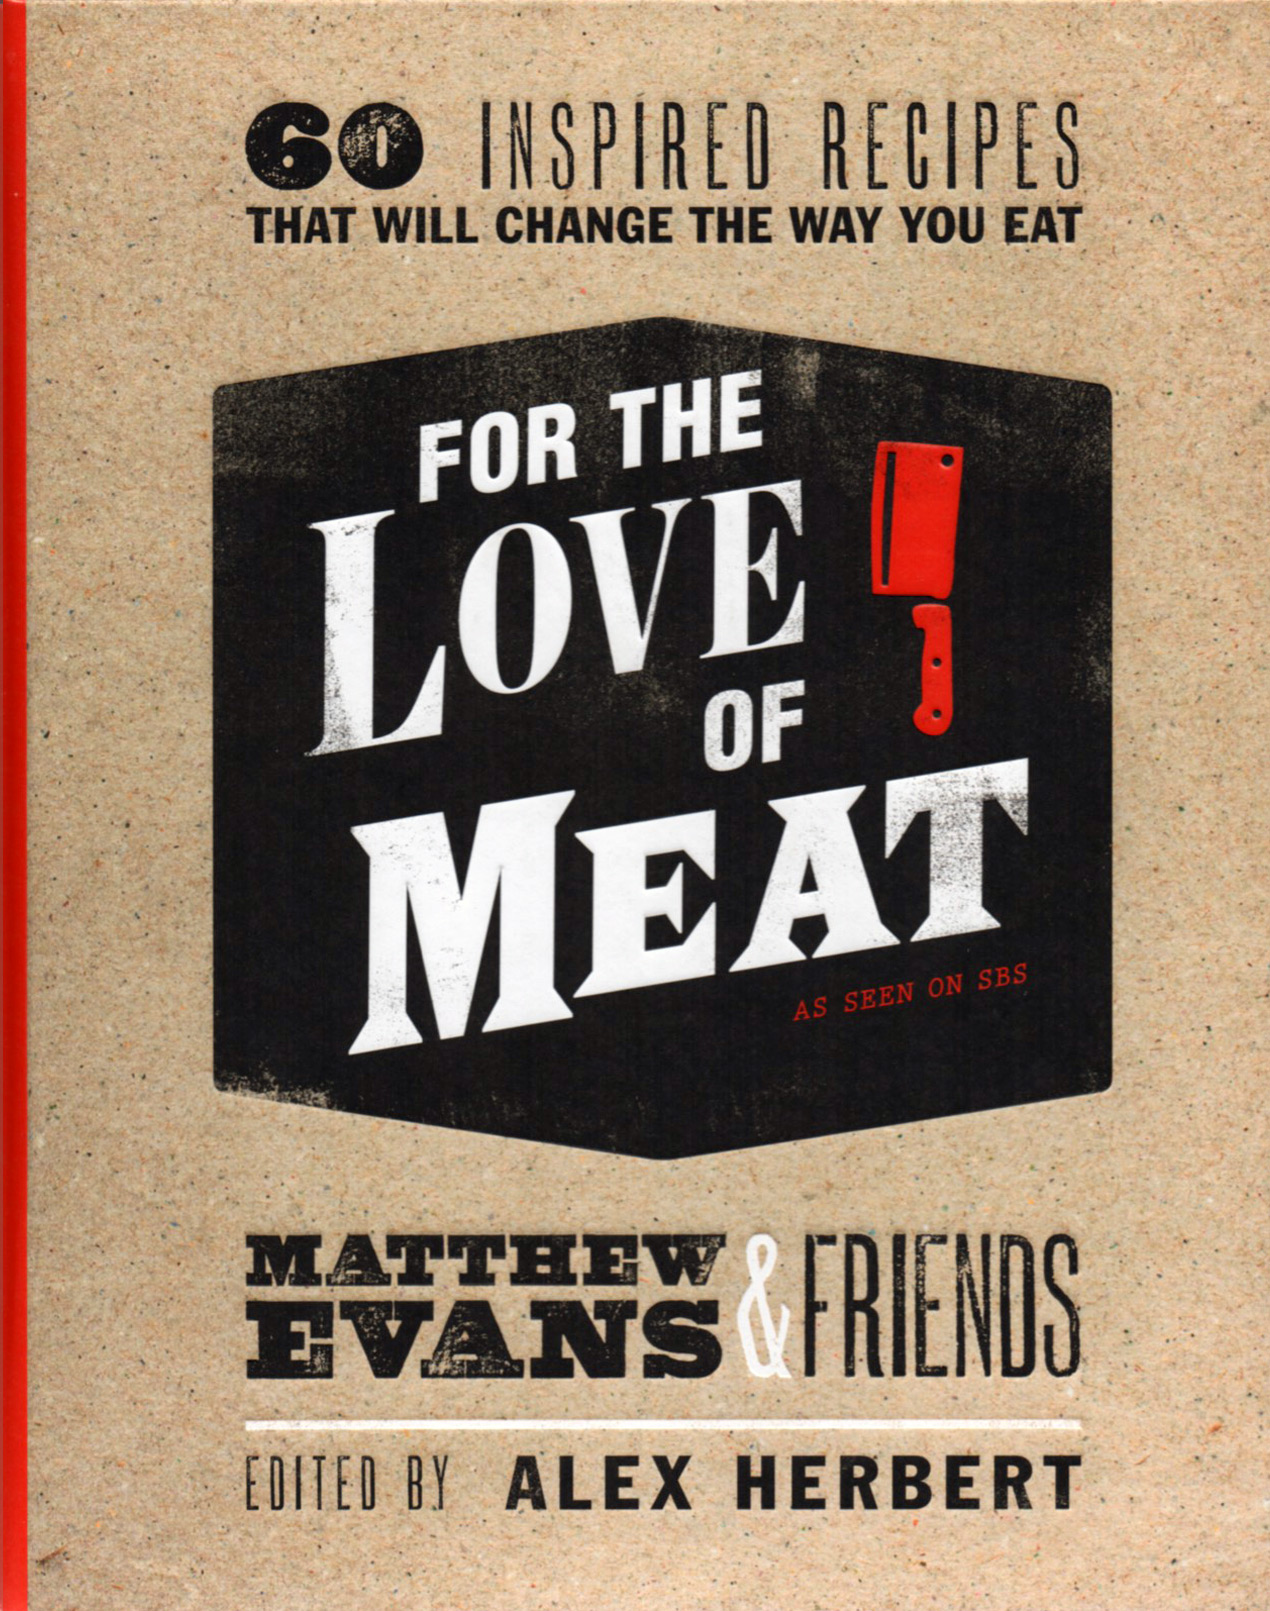 For the Love of Meat